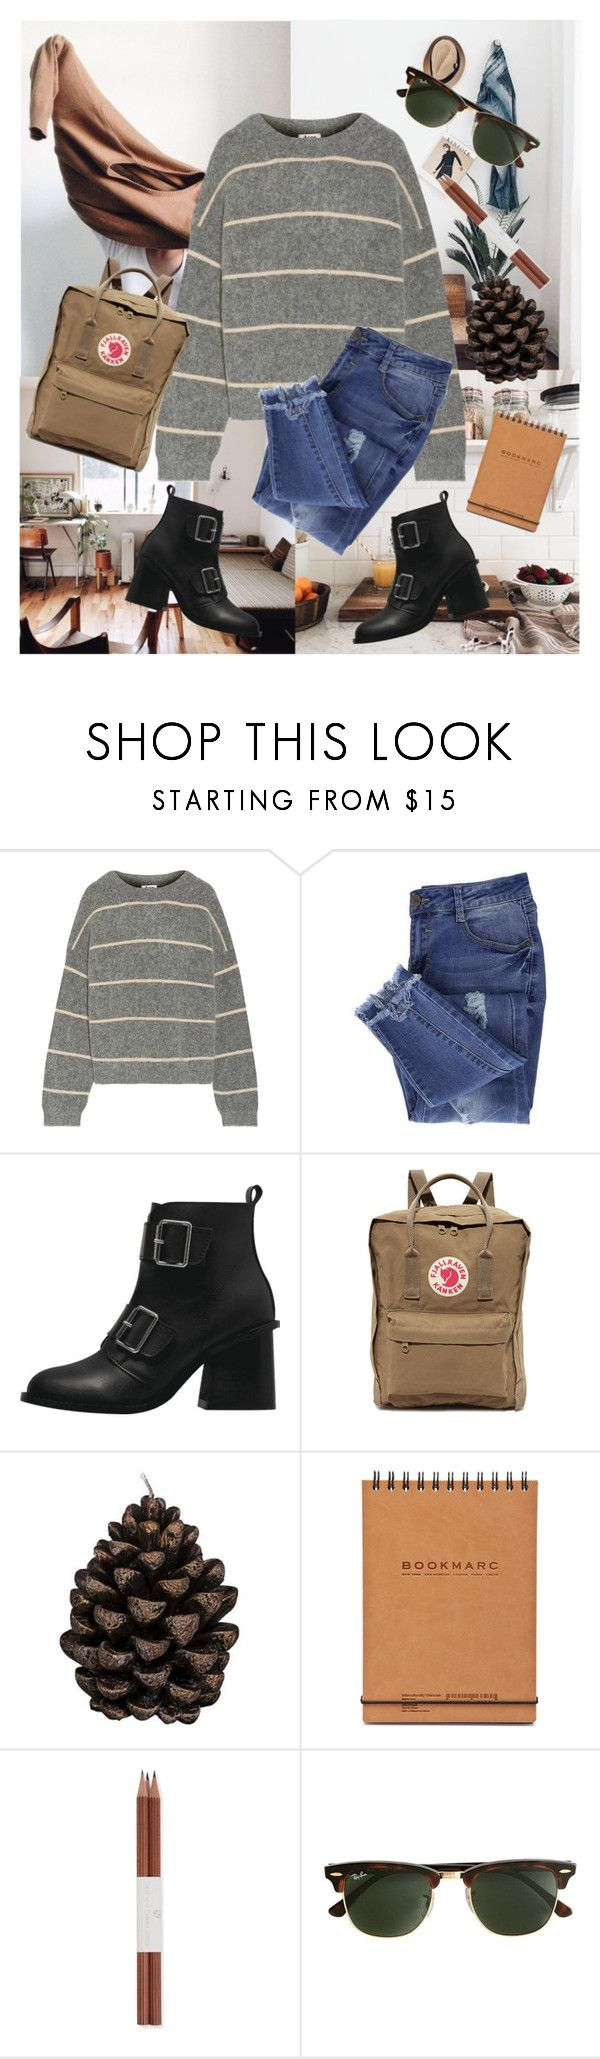 """""""Strange Things are happening..."""" by marabellax ❤ liked on Polyvore featuring Acne Studios, Essie, Fjällräven, Broste Copenhagen, Faber-Castell and J.Crew"""